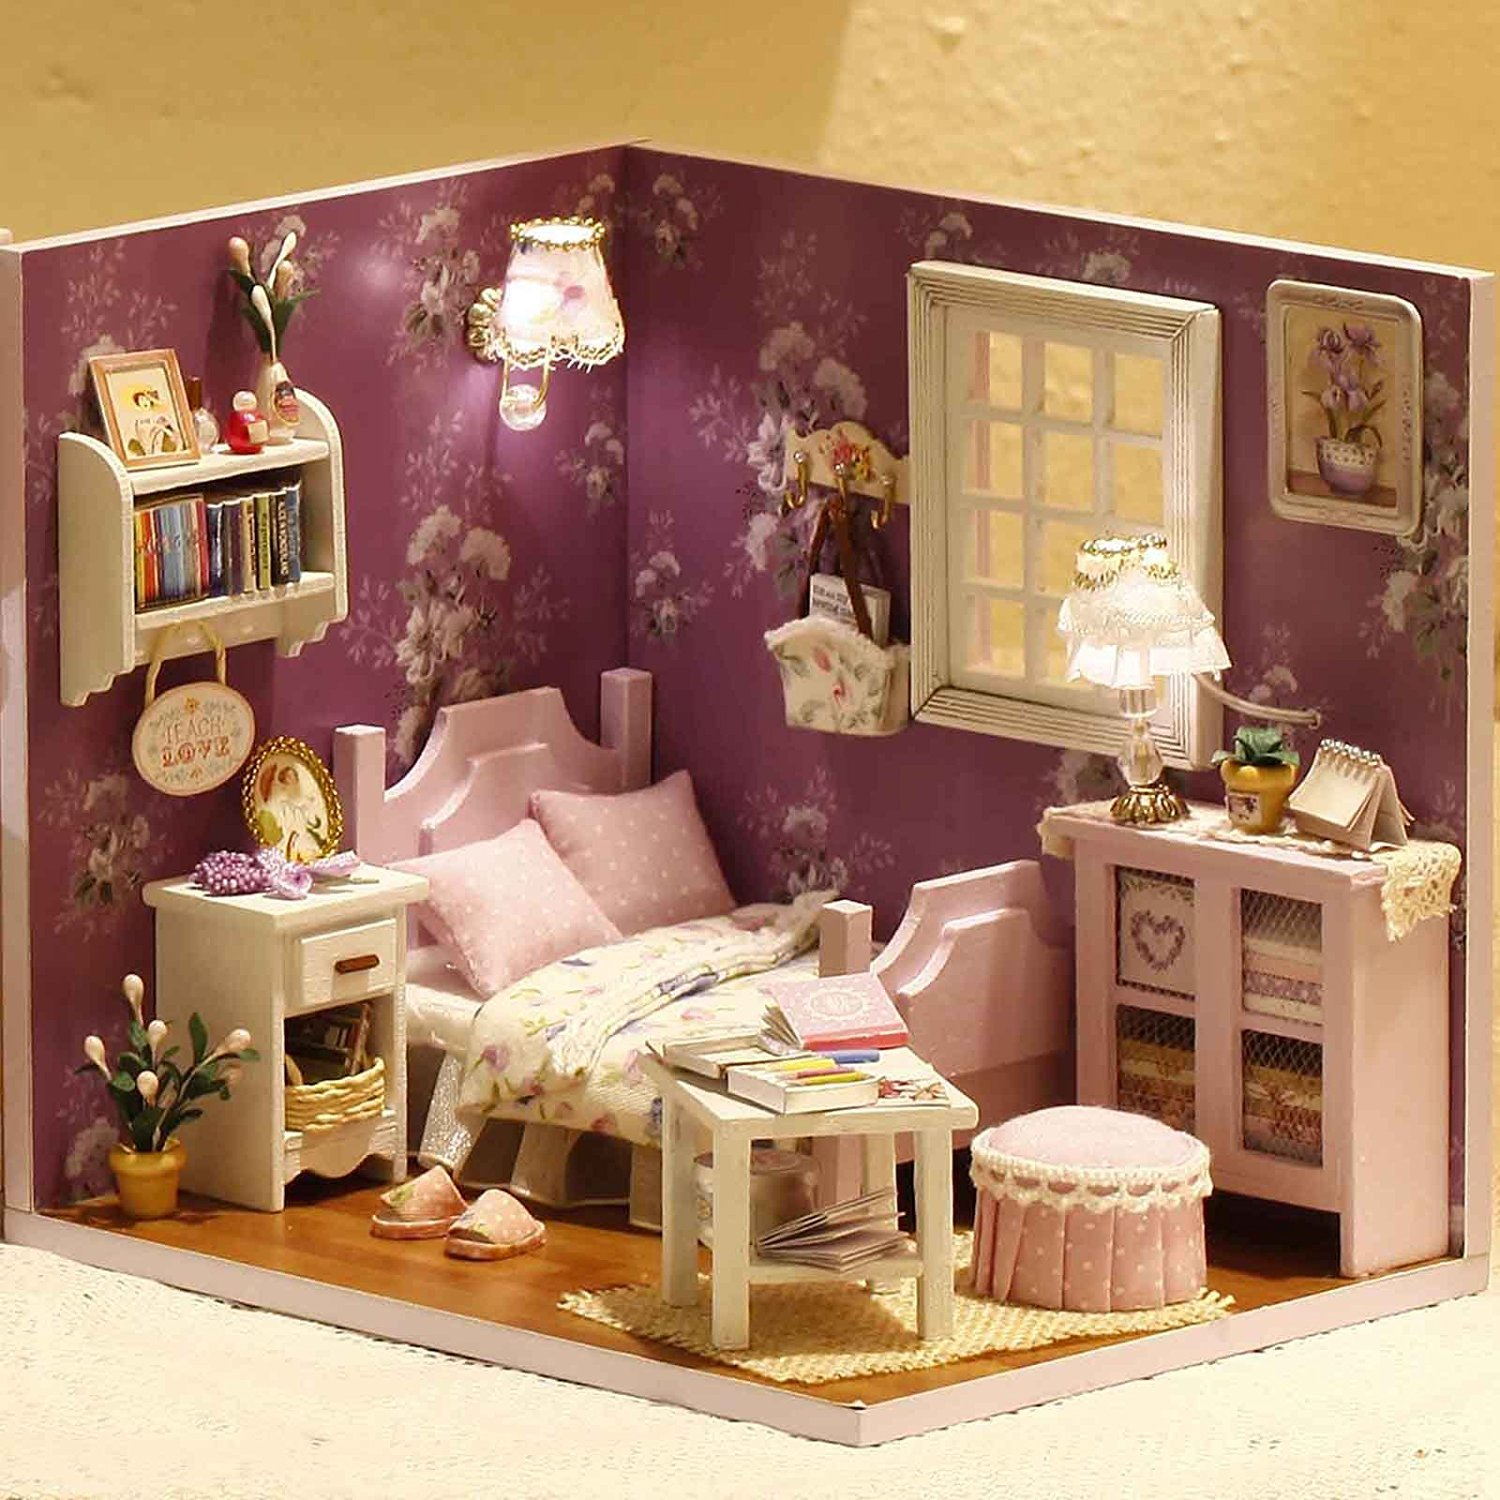 Buy Doll House  Sweet Sunshine Series Dollhouse Miniature Diy